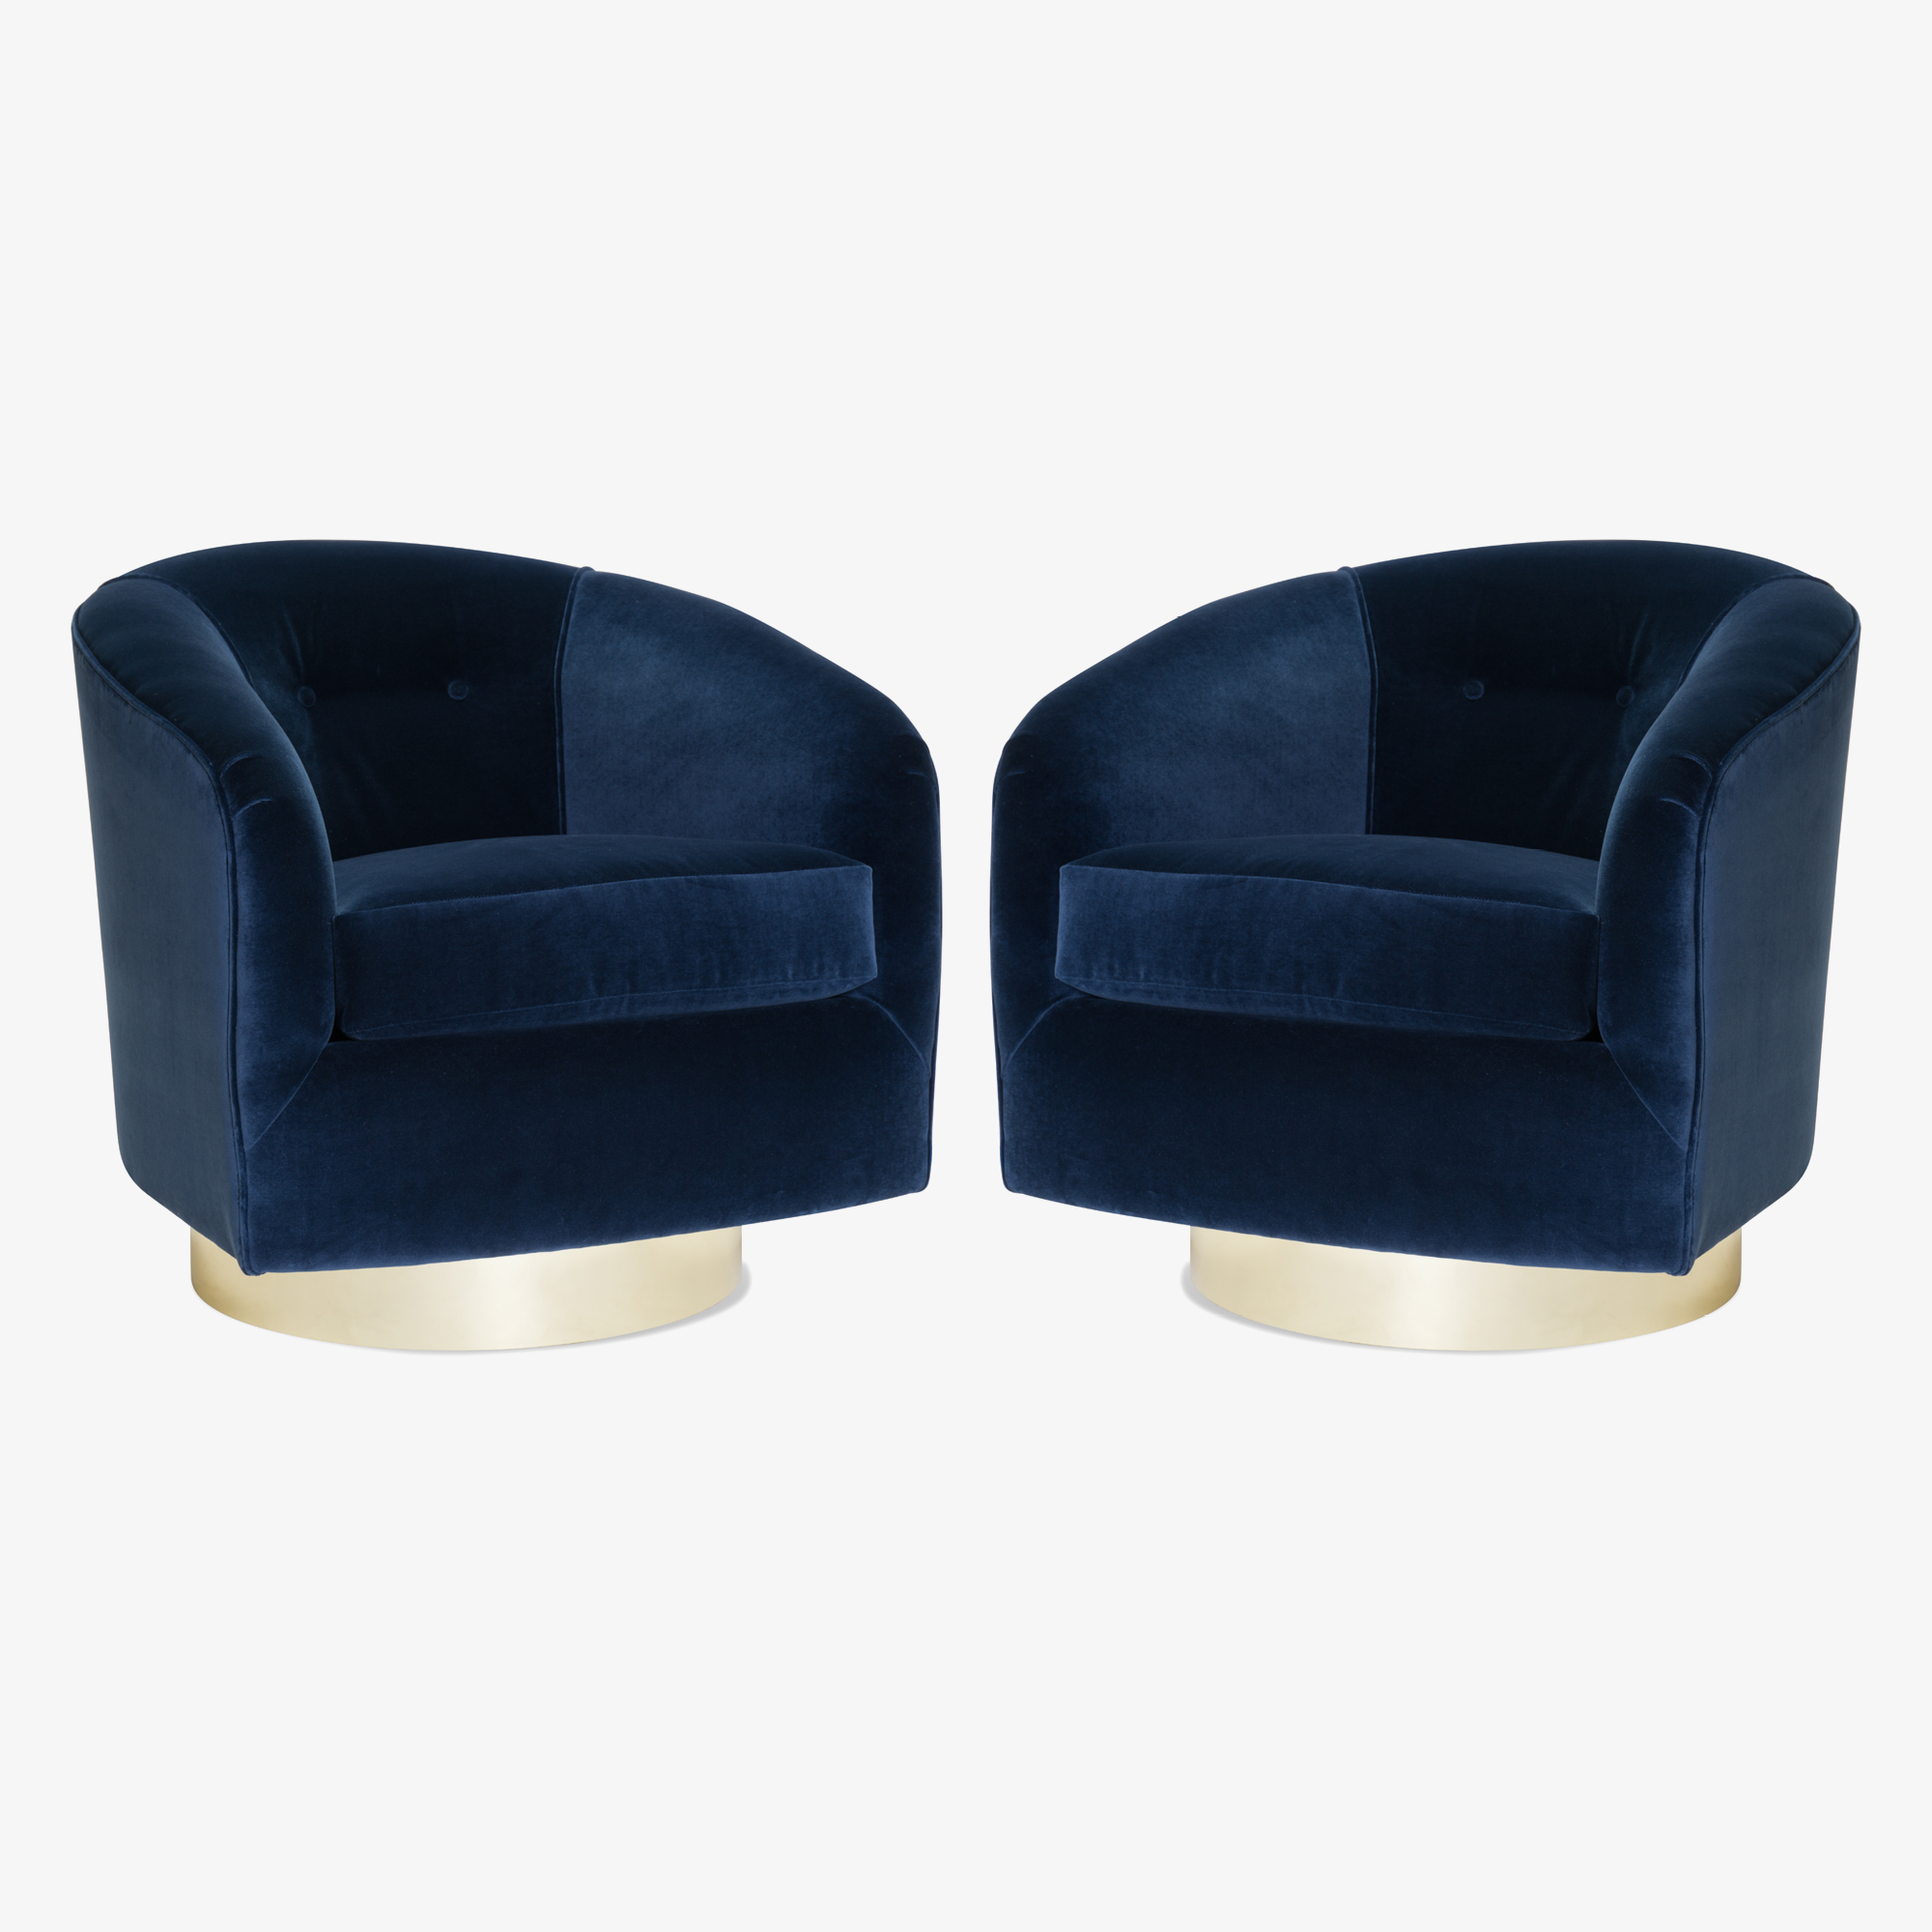 Swivel Tub Chairs in Navy Velvet with Polished Brass Bases, Pair2.png